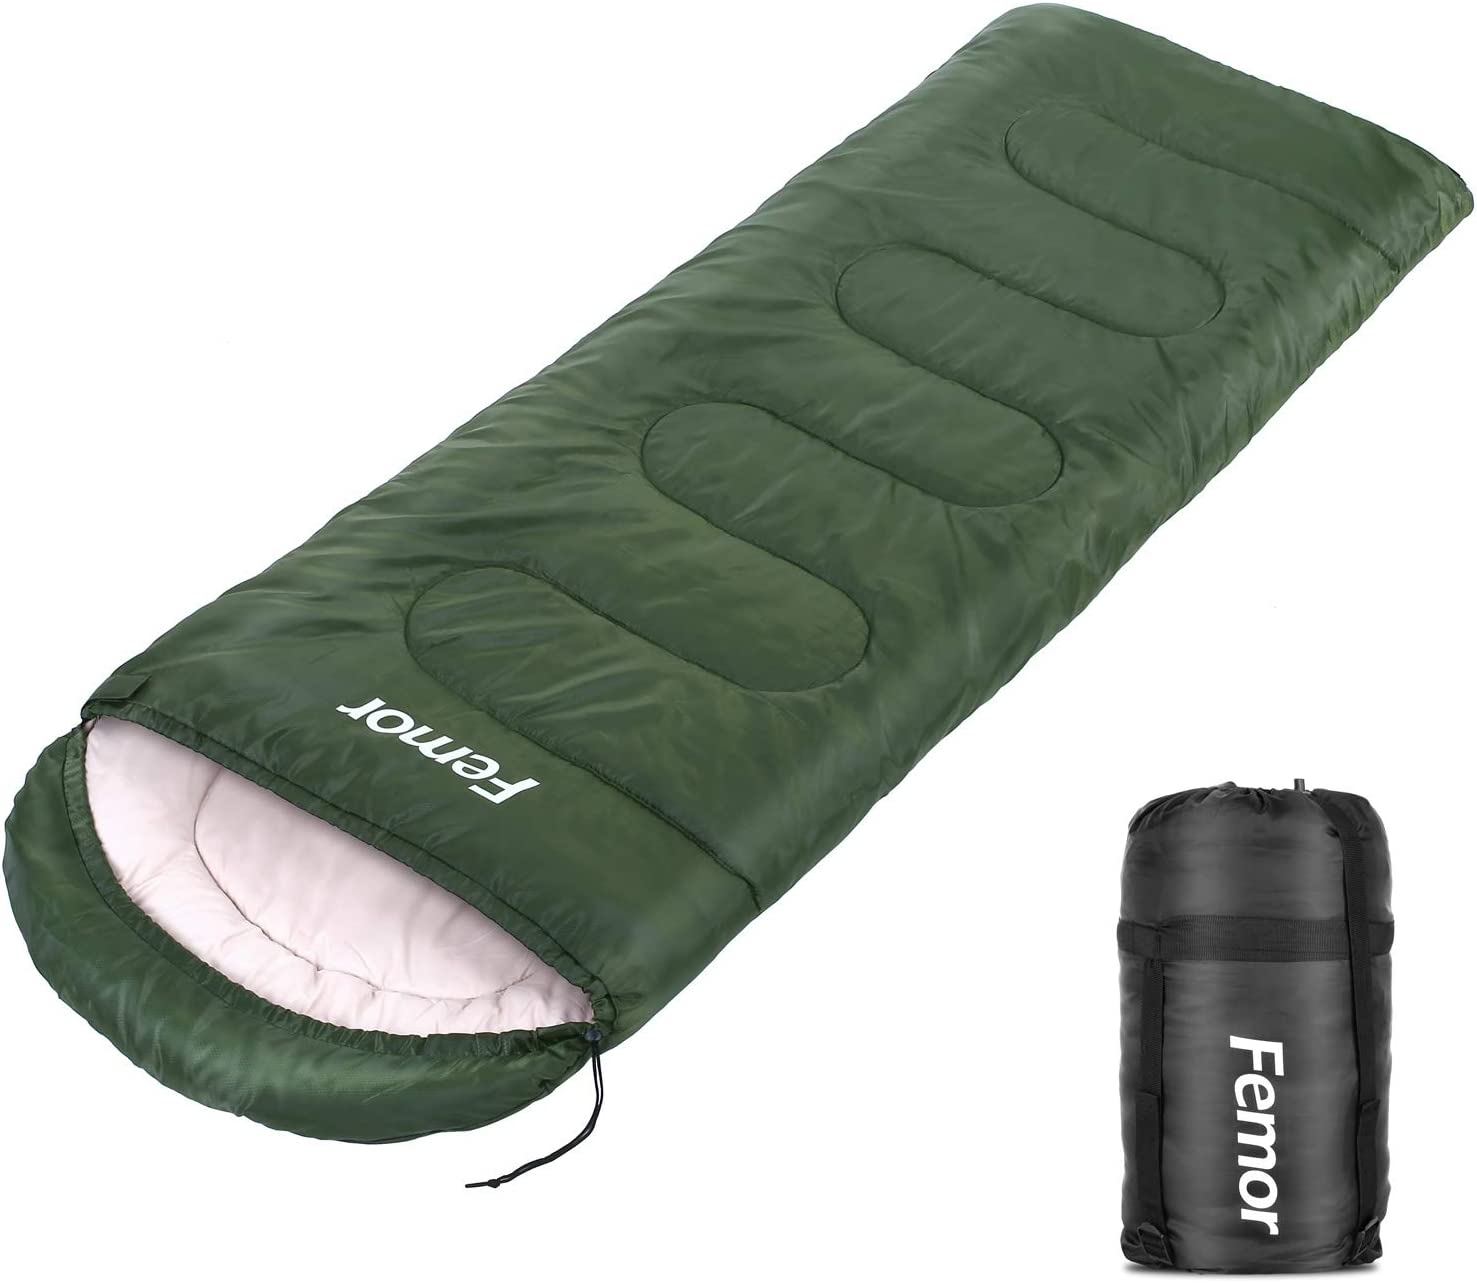 femor Sleeping Bag Lightweight, Comfortable and Waterproof, 3 Season Spring, Fall Winter Cold Weather for Traveling, Camping, Hiking, Backpacking Outdoor Activities, Adults and Kids.